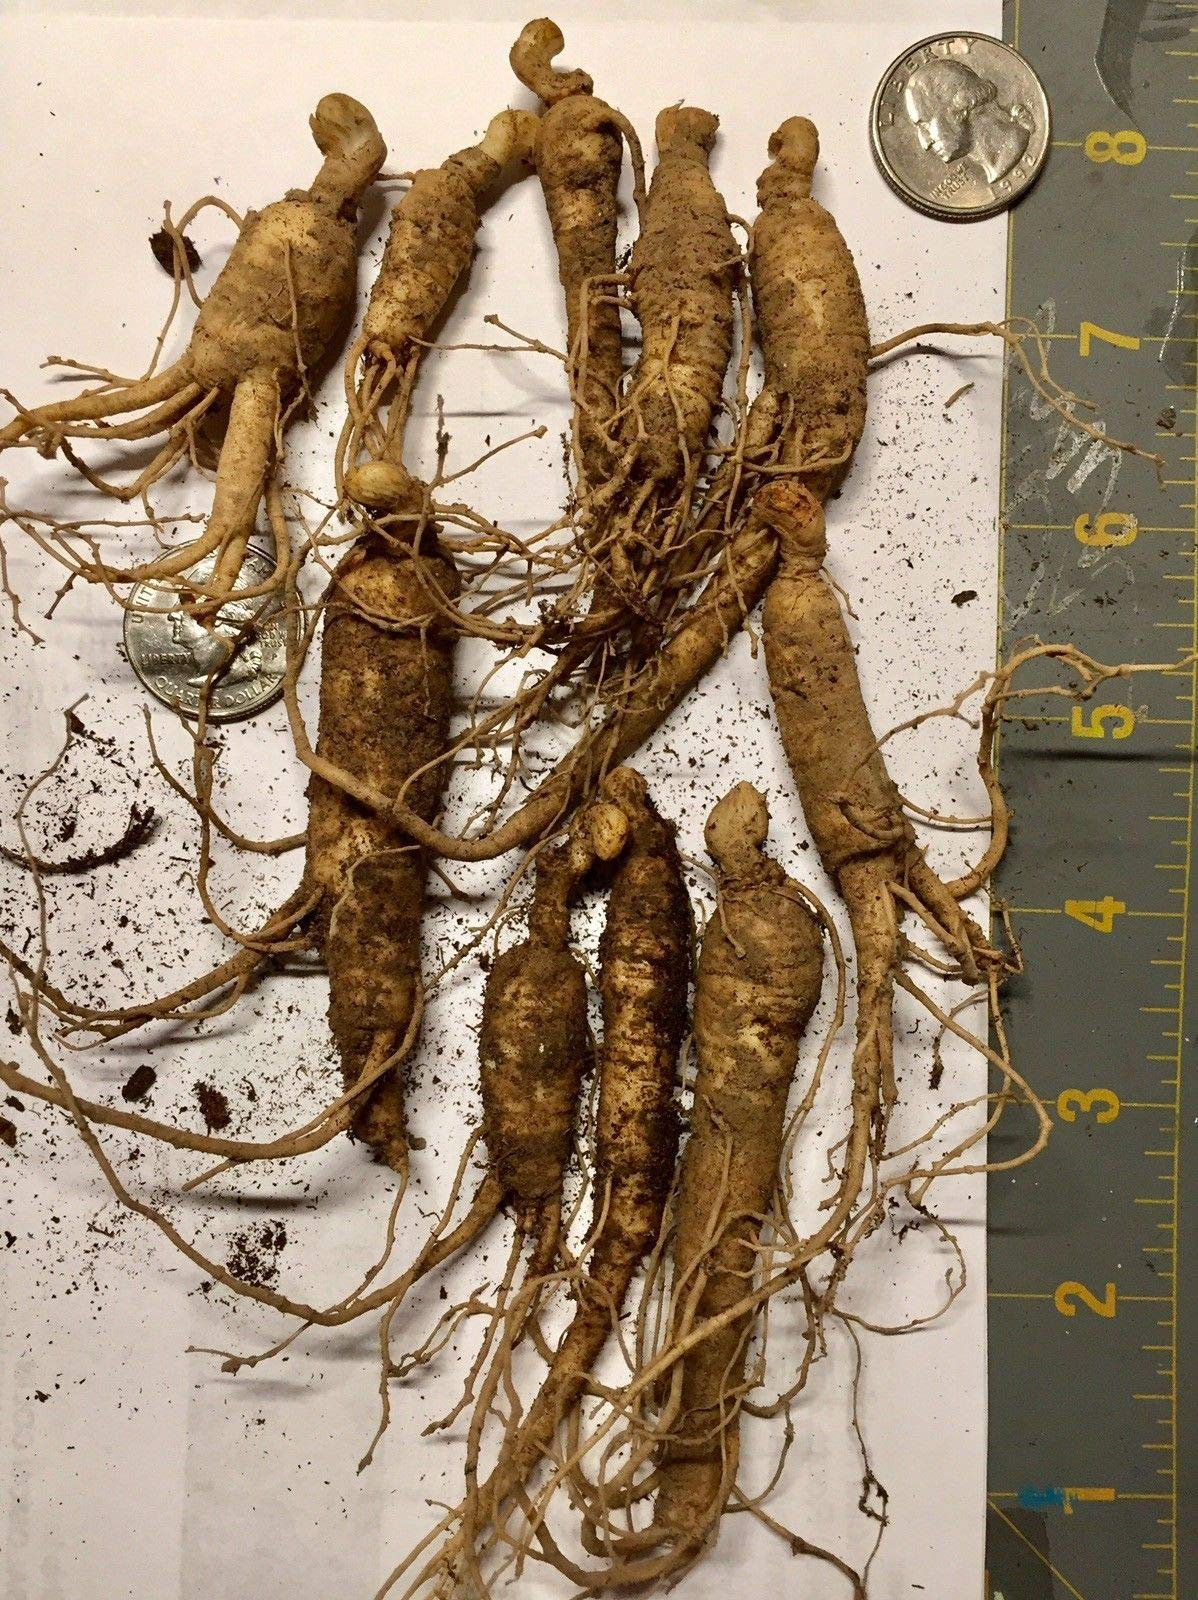 5 PANAX Ginseng Roots 4+ Inches Long -3 Year Old Forest Grown Roots by astor_farm (Image #1)